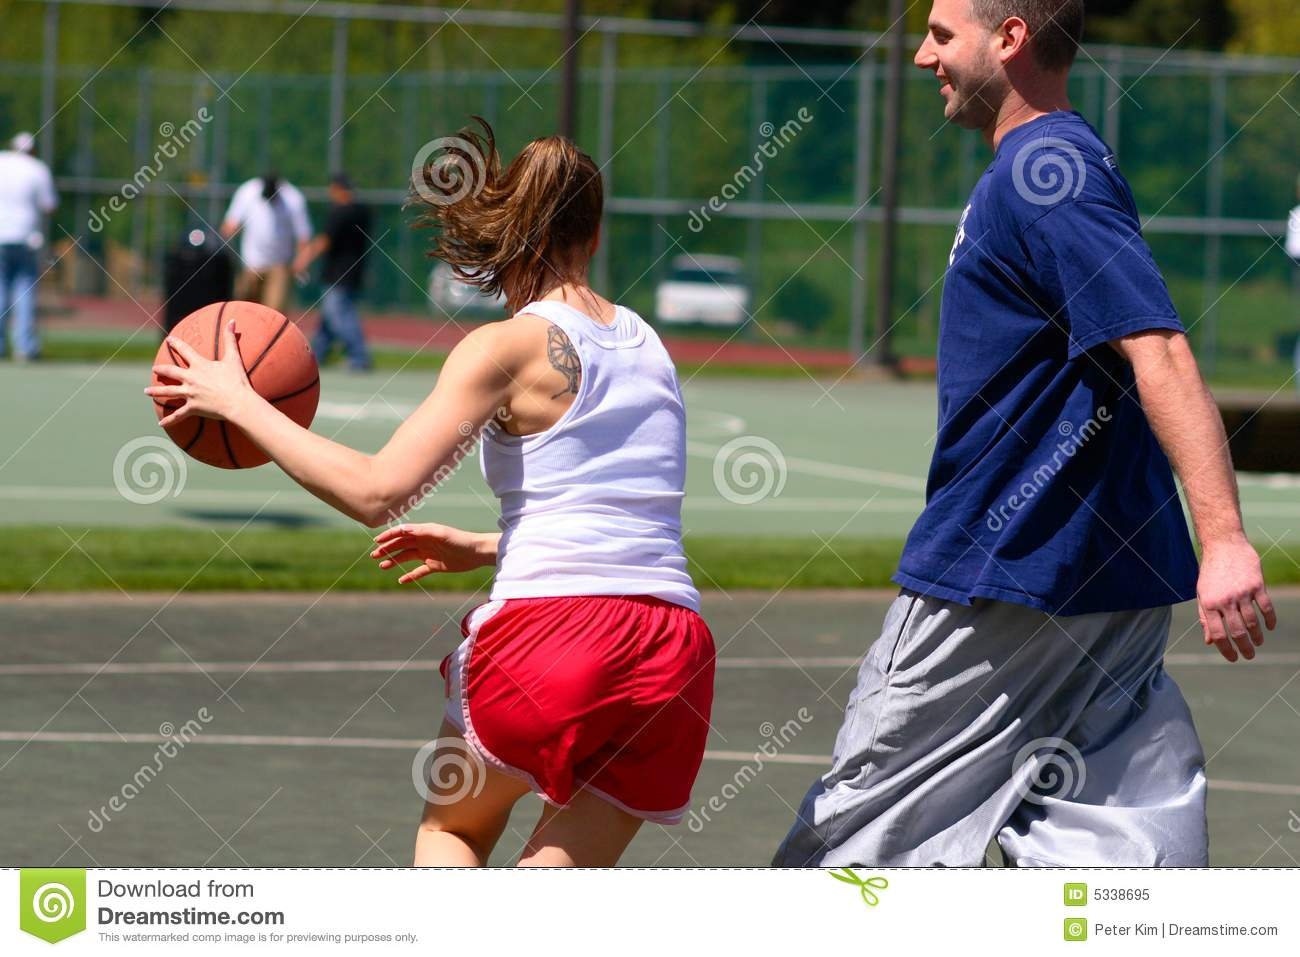 man playing women's basketball - 612×408